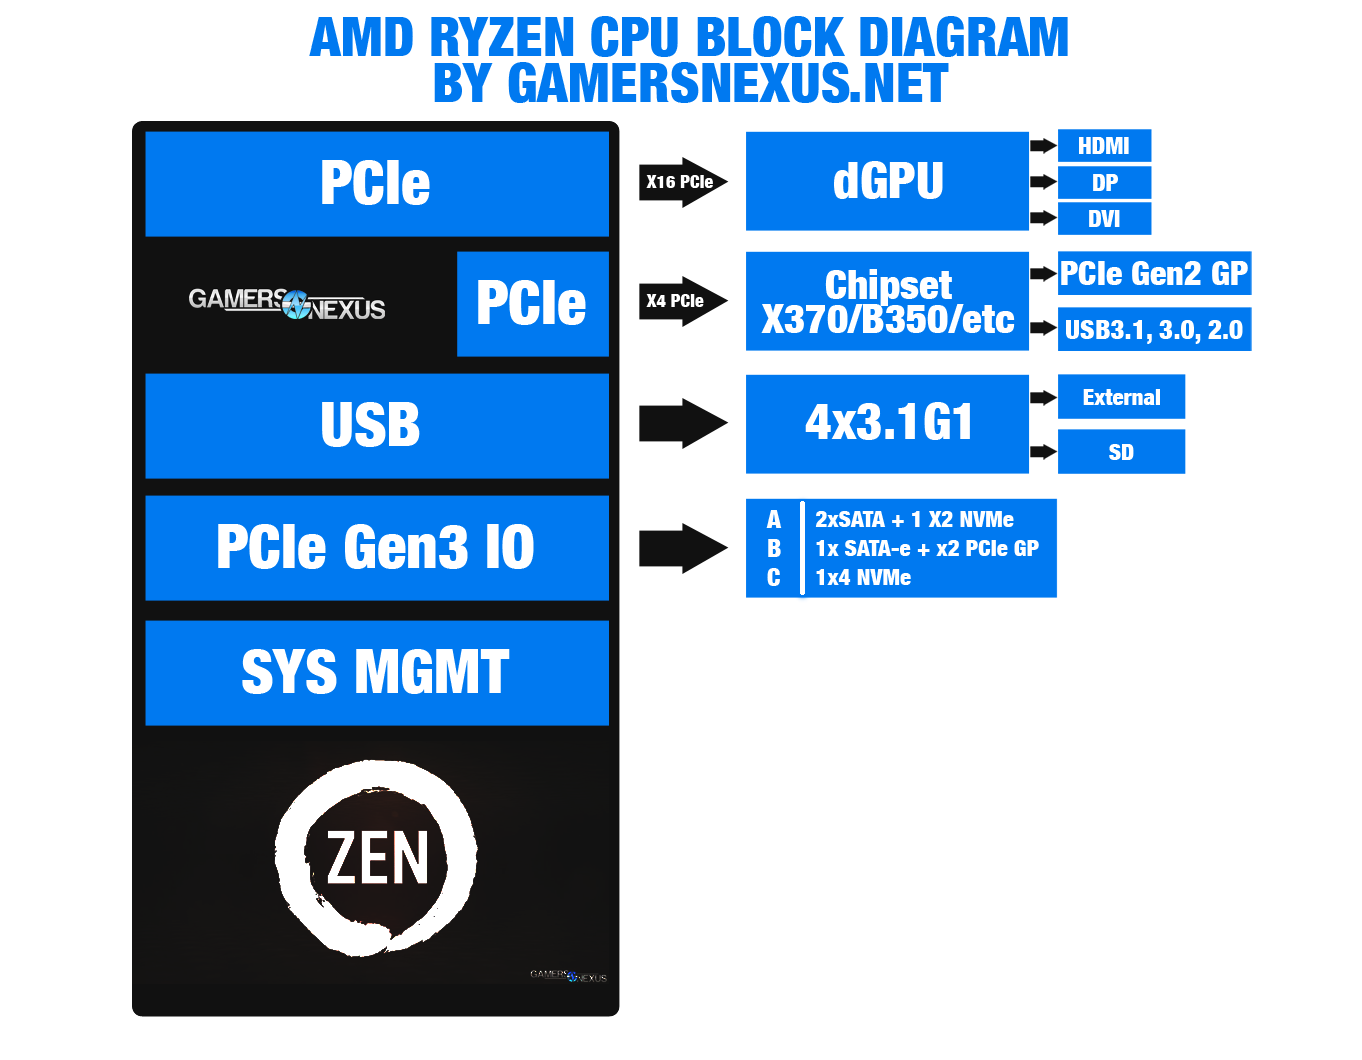 Amd Ryzen R7 1800x Review An I5 In Gaming I7 Production Playstation 4 Block Diagram Am4 Gn 1